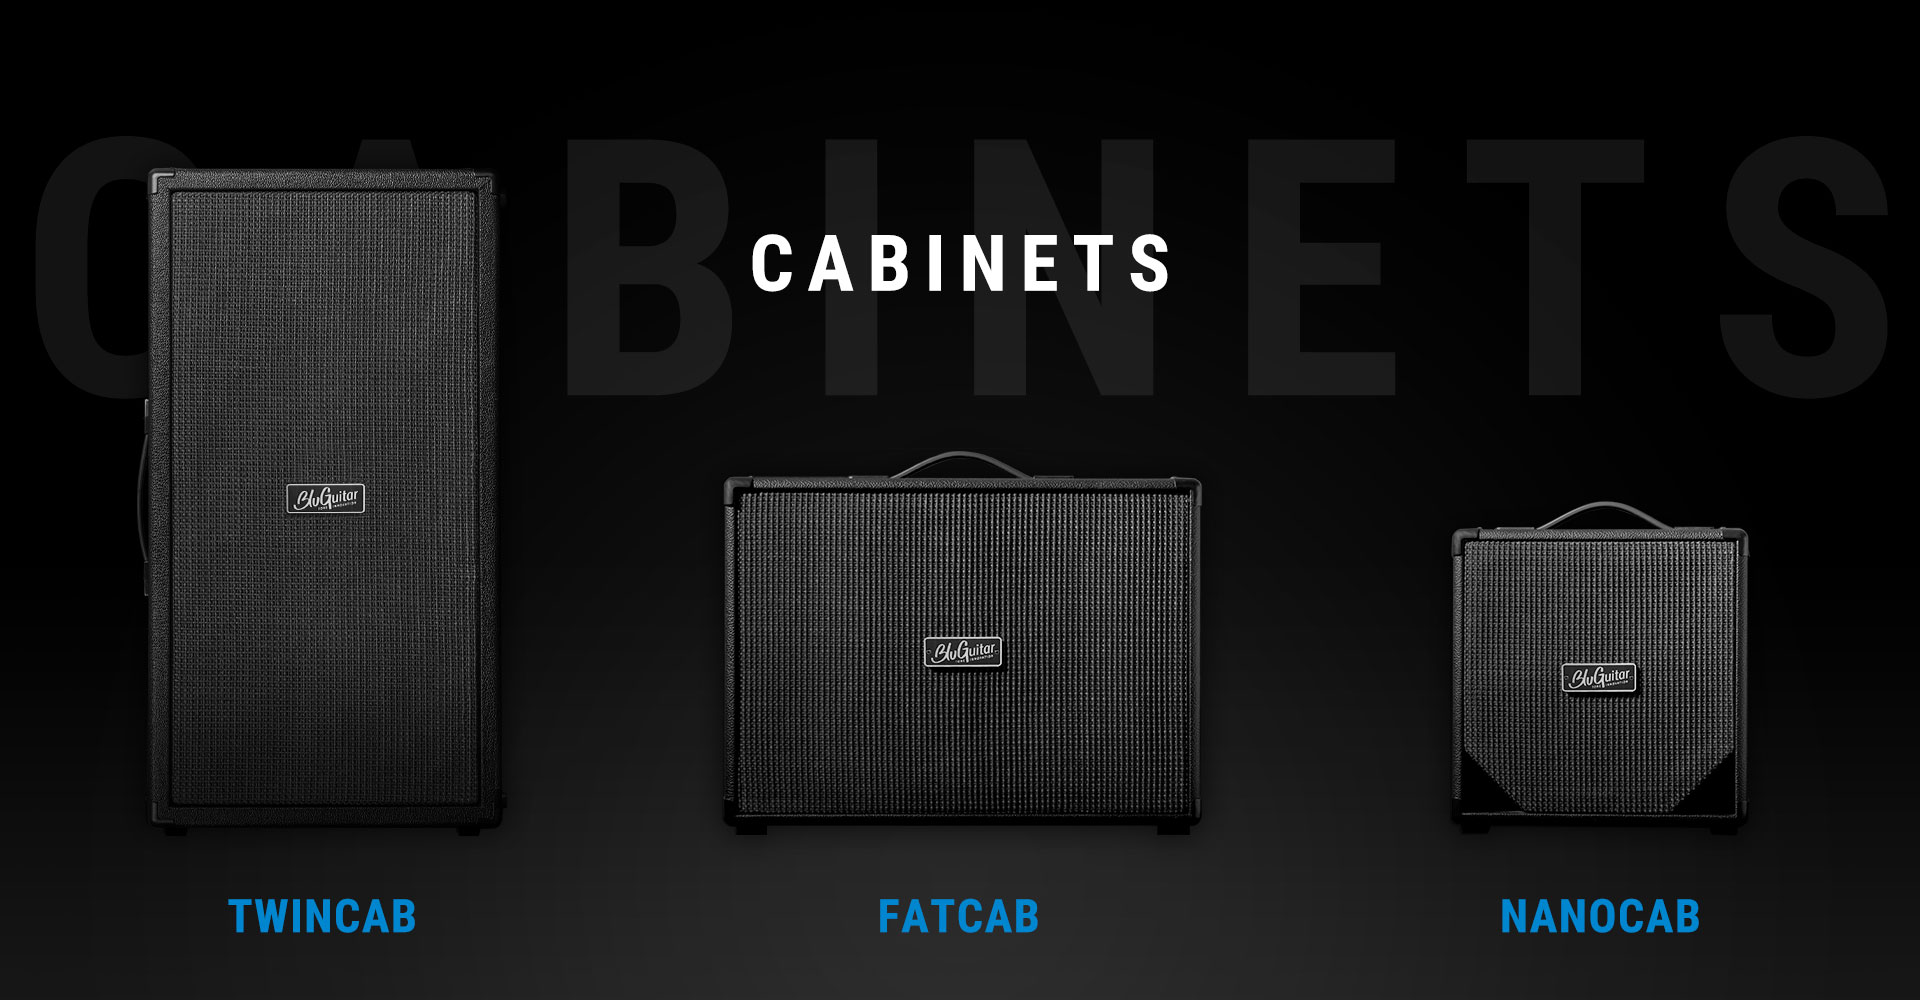 media/image/bluguitar-category-teaser-cabinets-092020.jpg